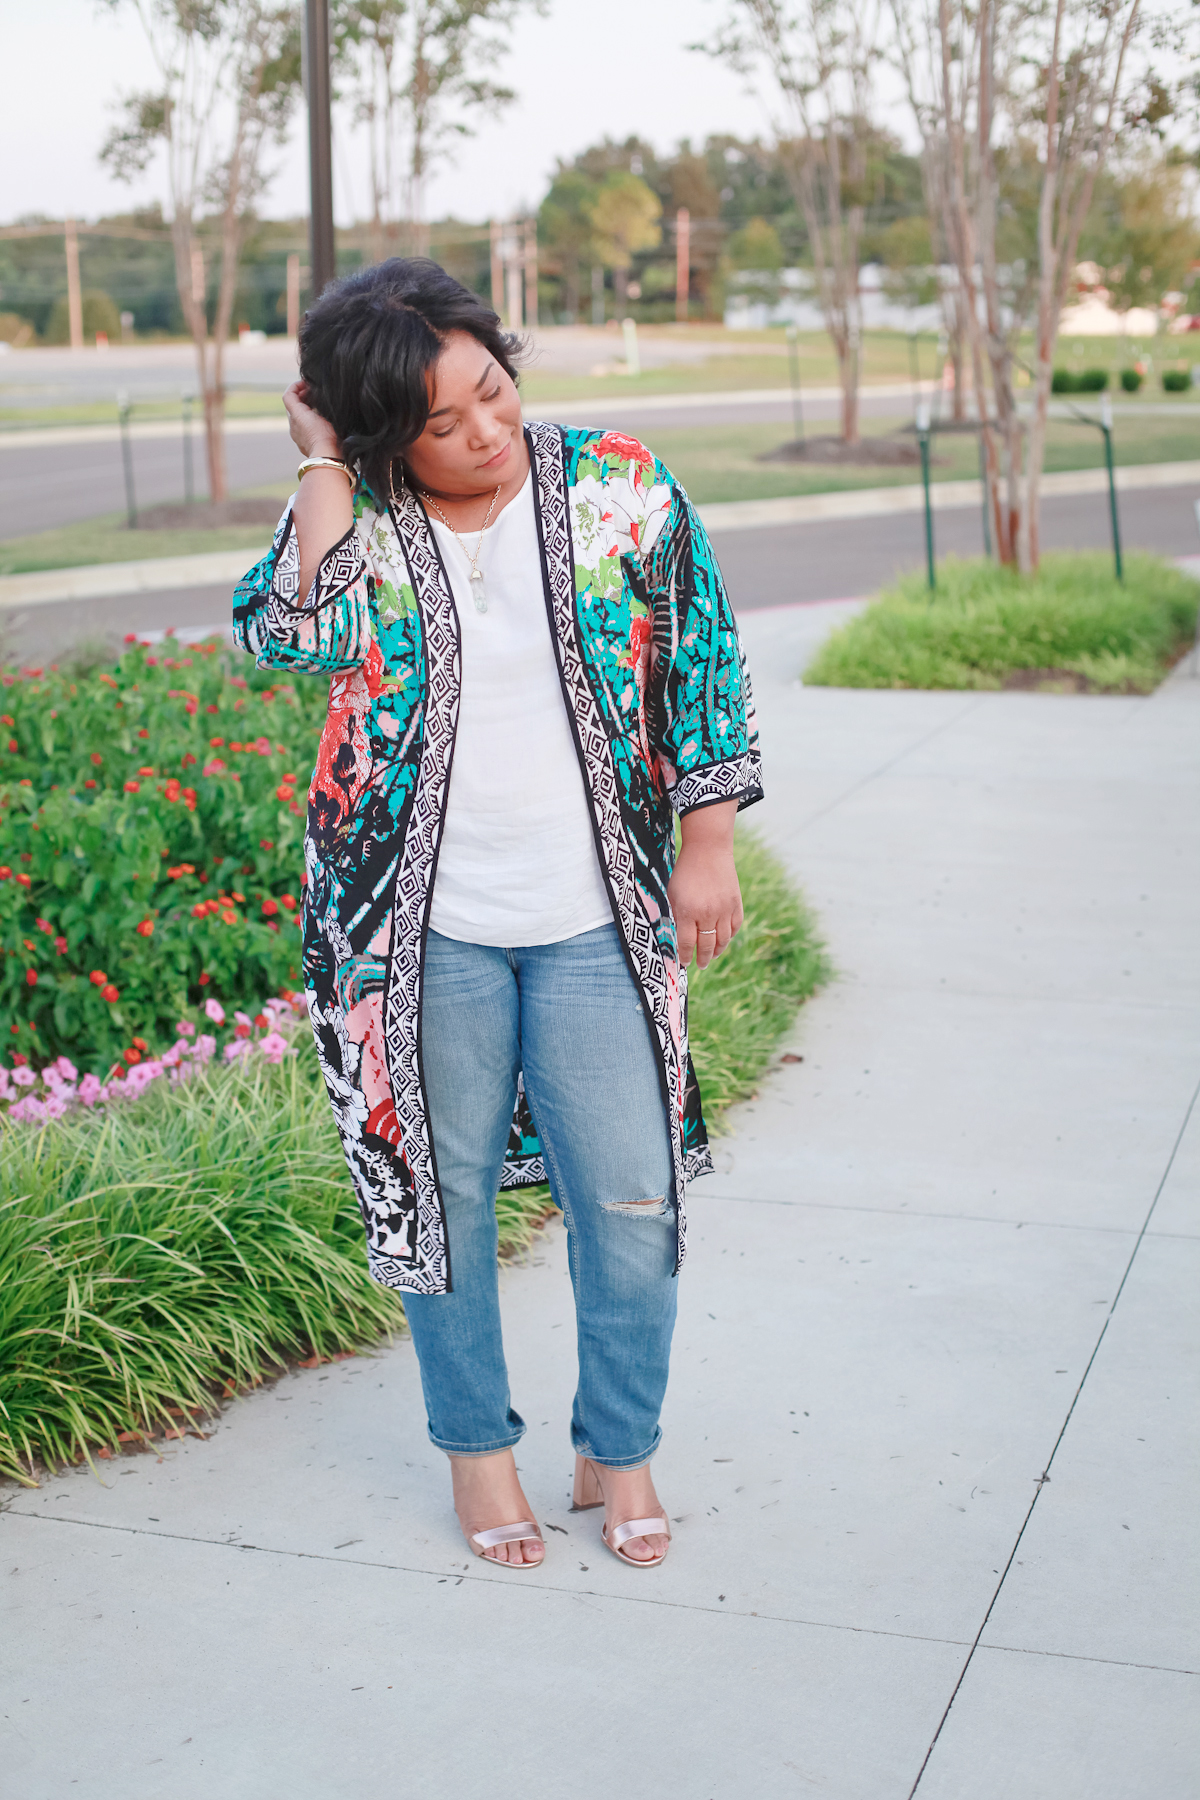 Andrea Fenise Memphis Fashion Blogger Features Working Girl Interview with Kim of KPFusion